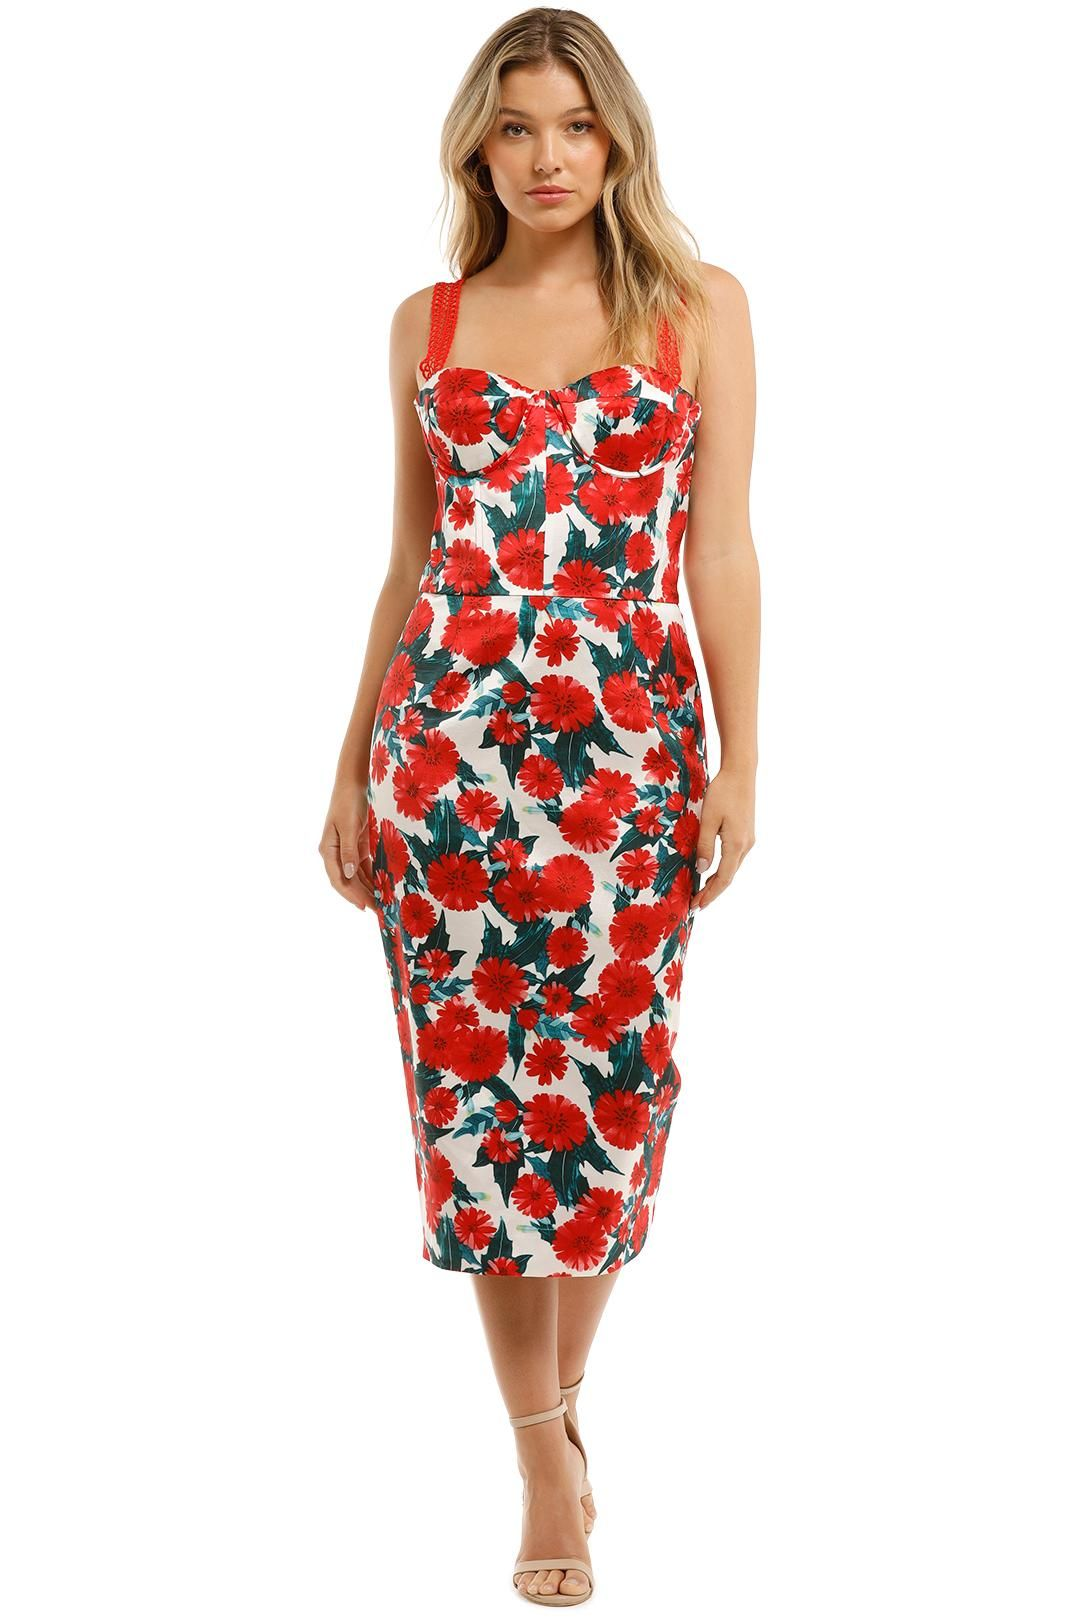 Bronx and Branco Ruby Pencil Dress Red Floral